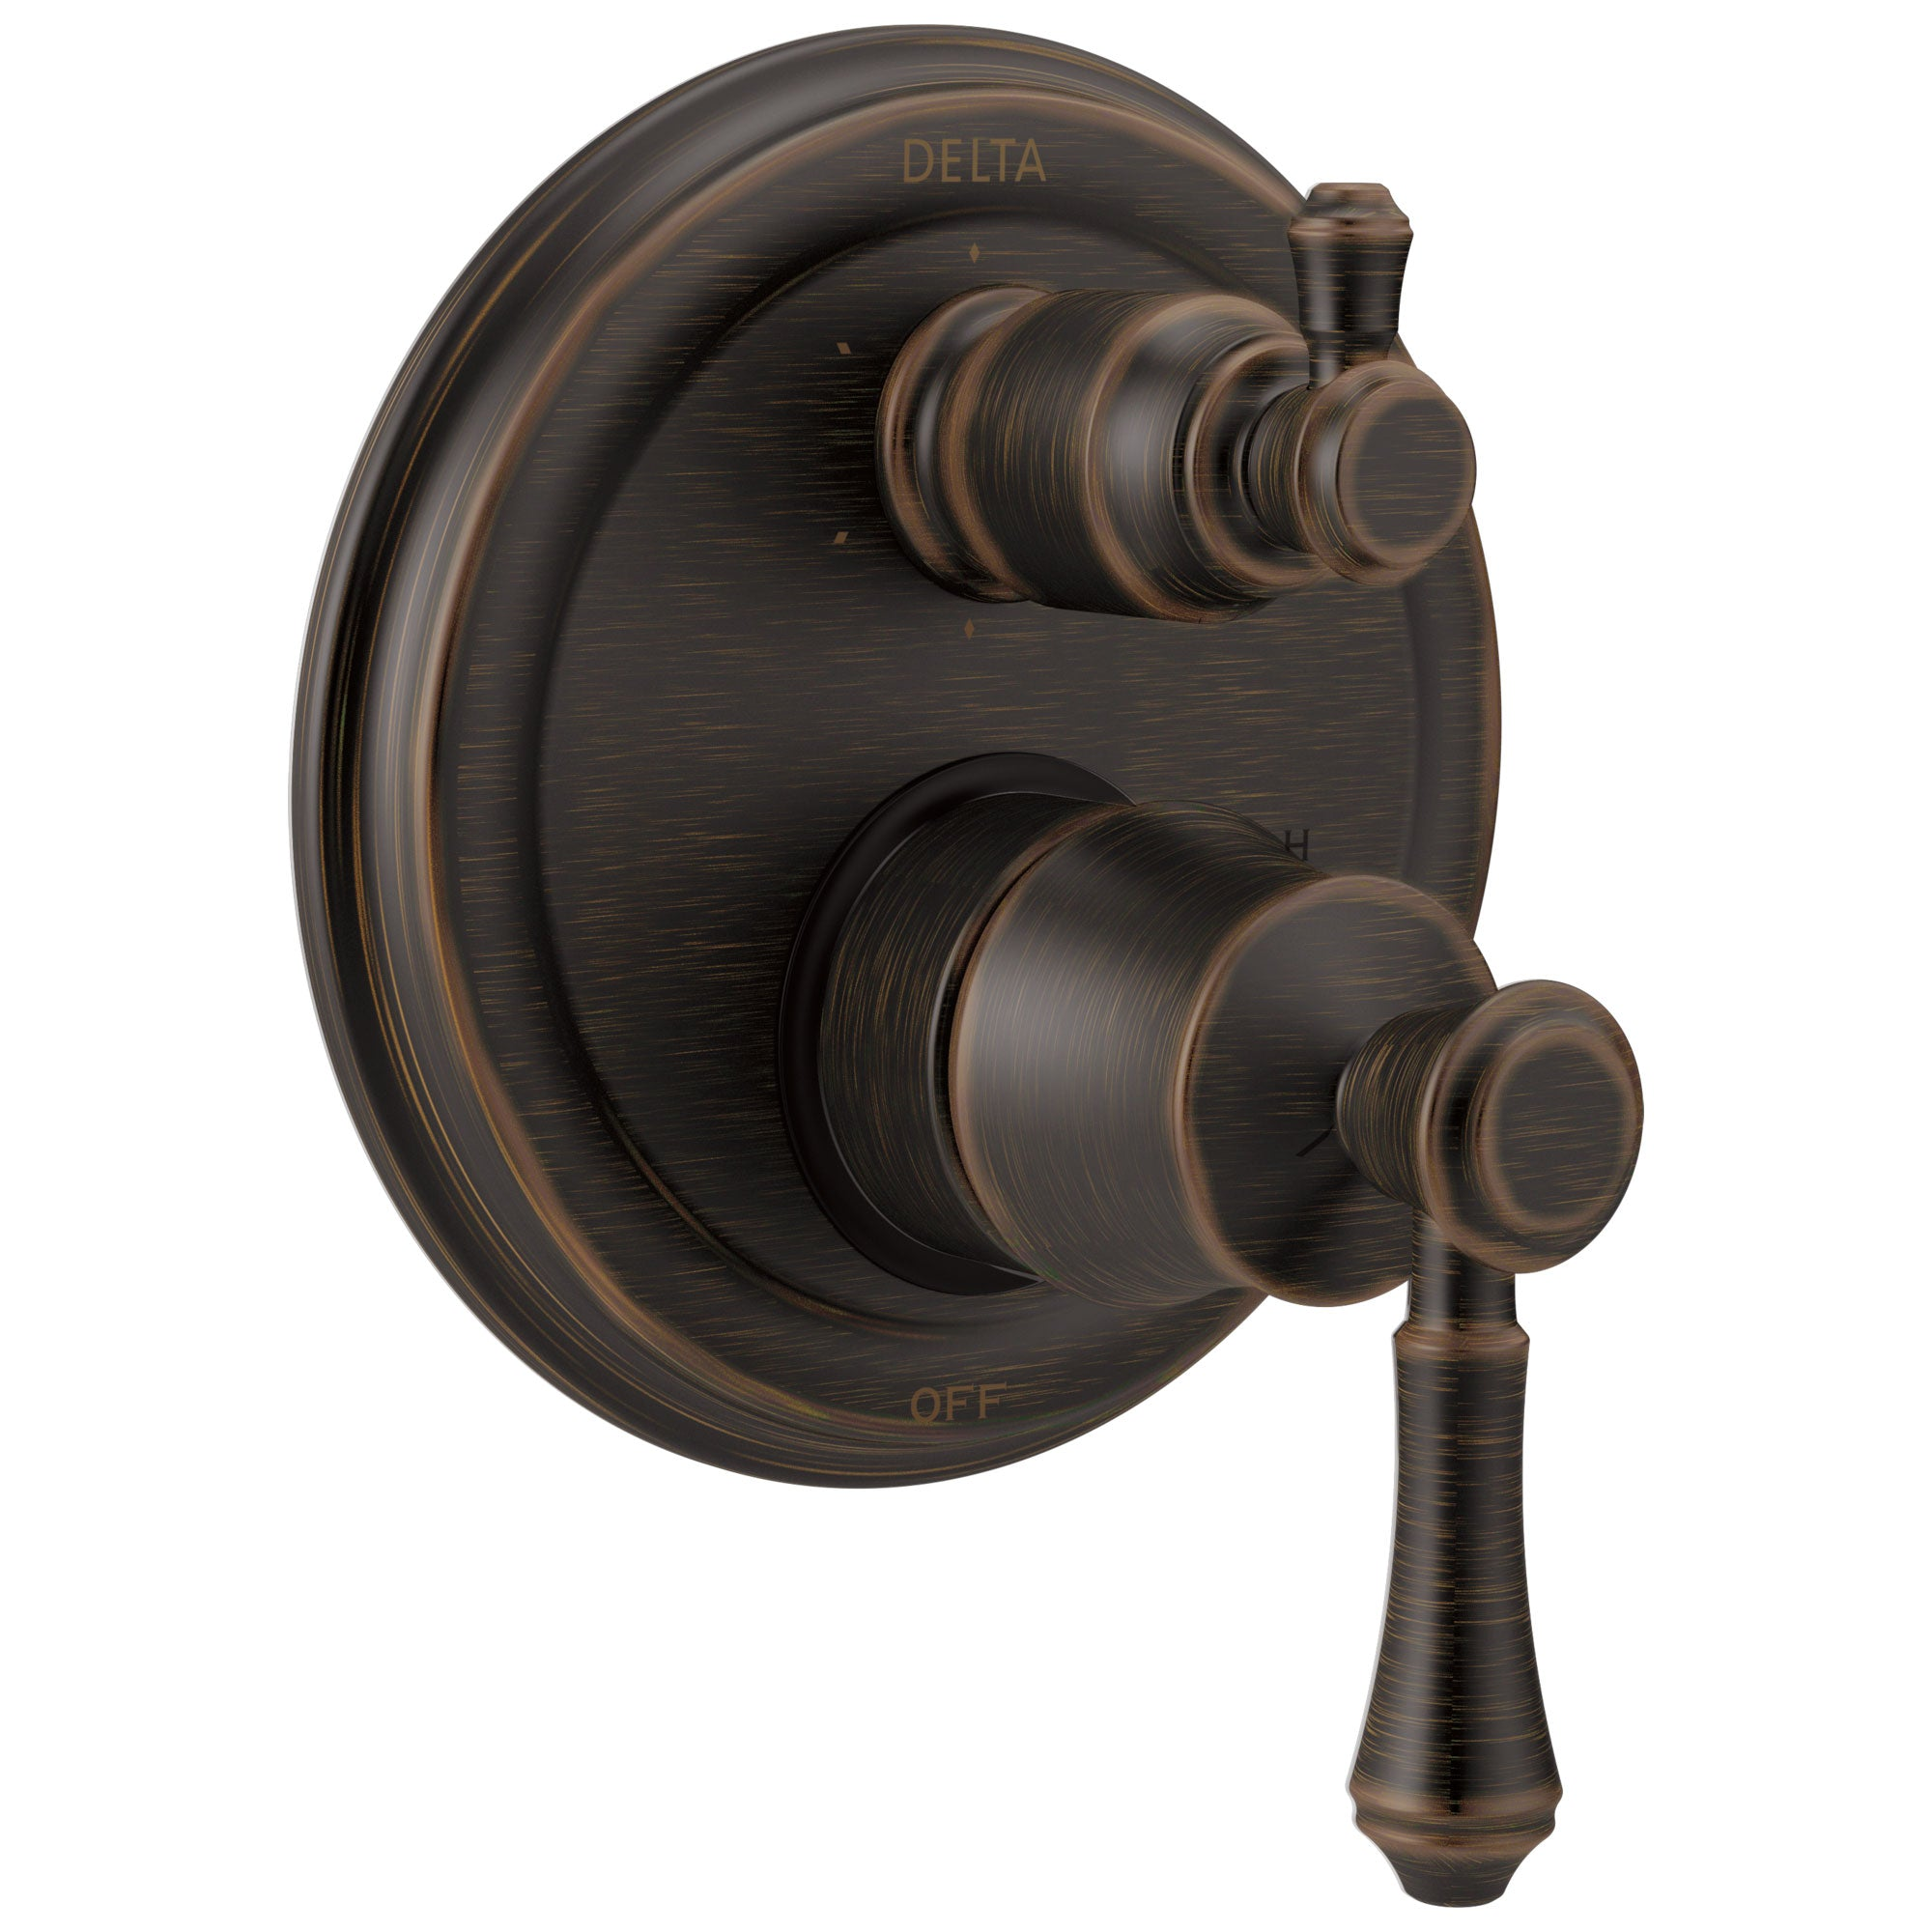 Delta Cassidy Collection Venetian Bronze Traditional Shower Faucet Control Handle with 6-Setting Integrated Diverter Trim (Requires Valve) DT24997RB